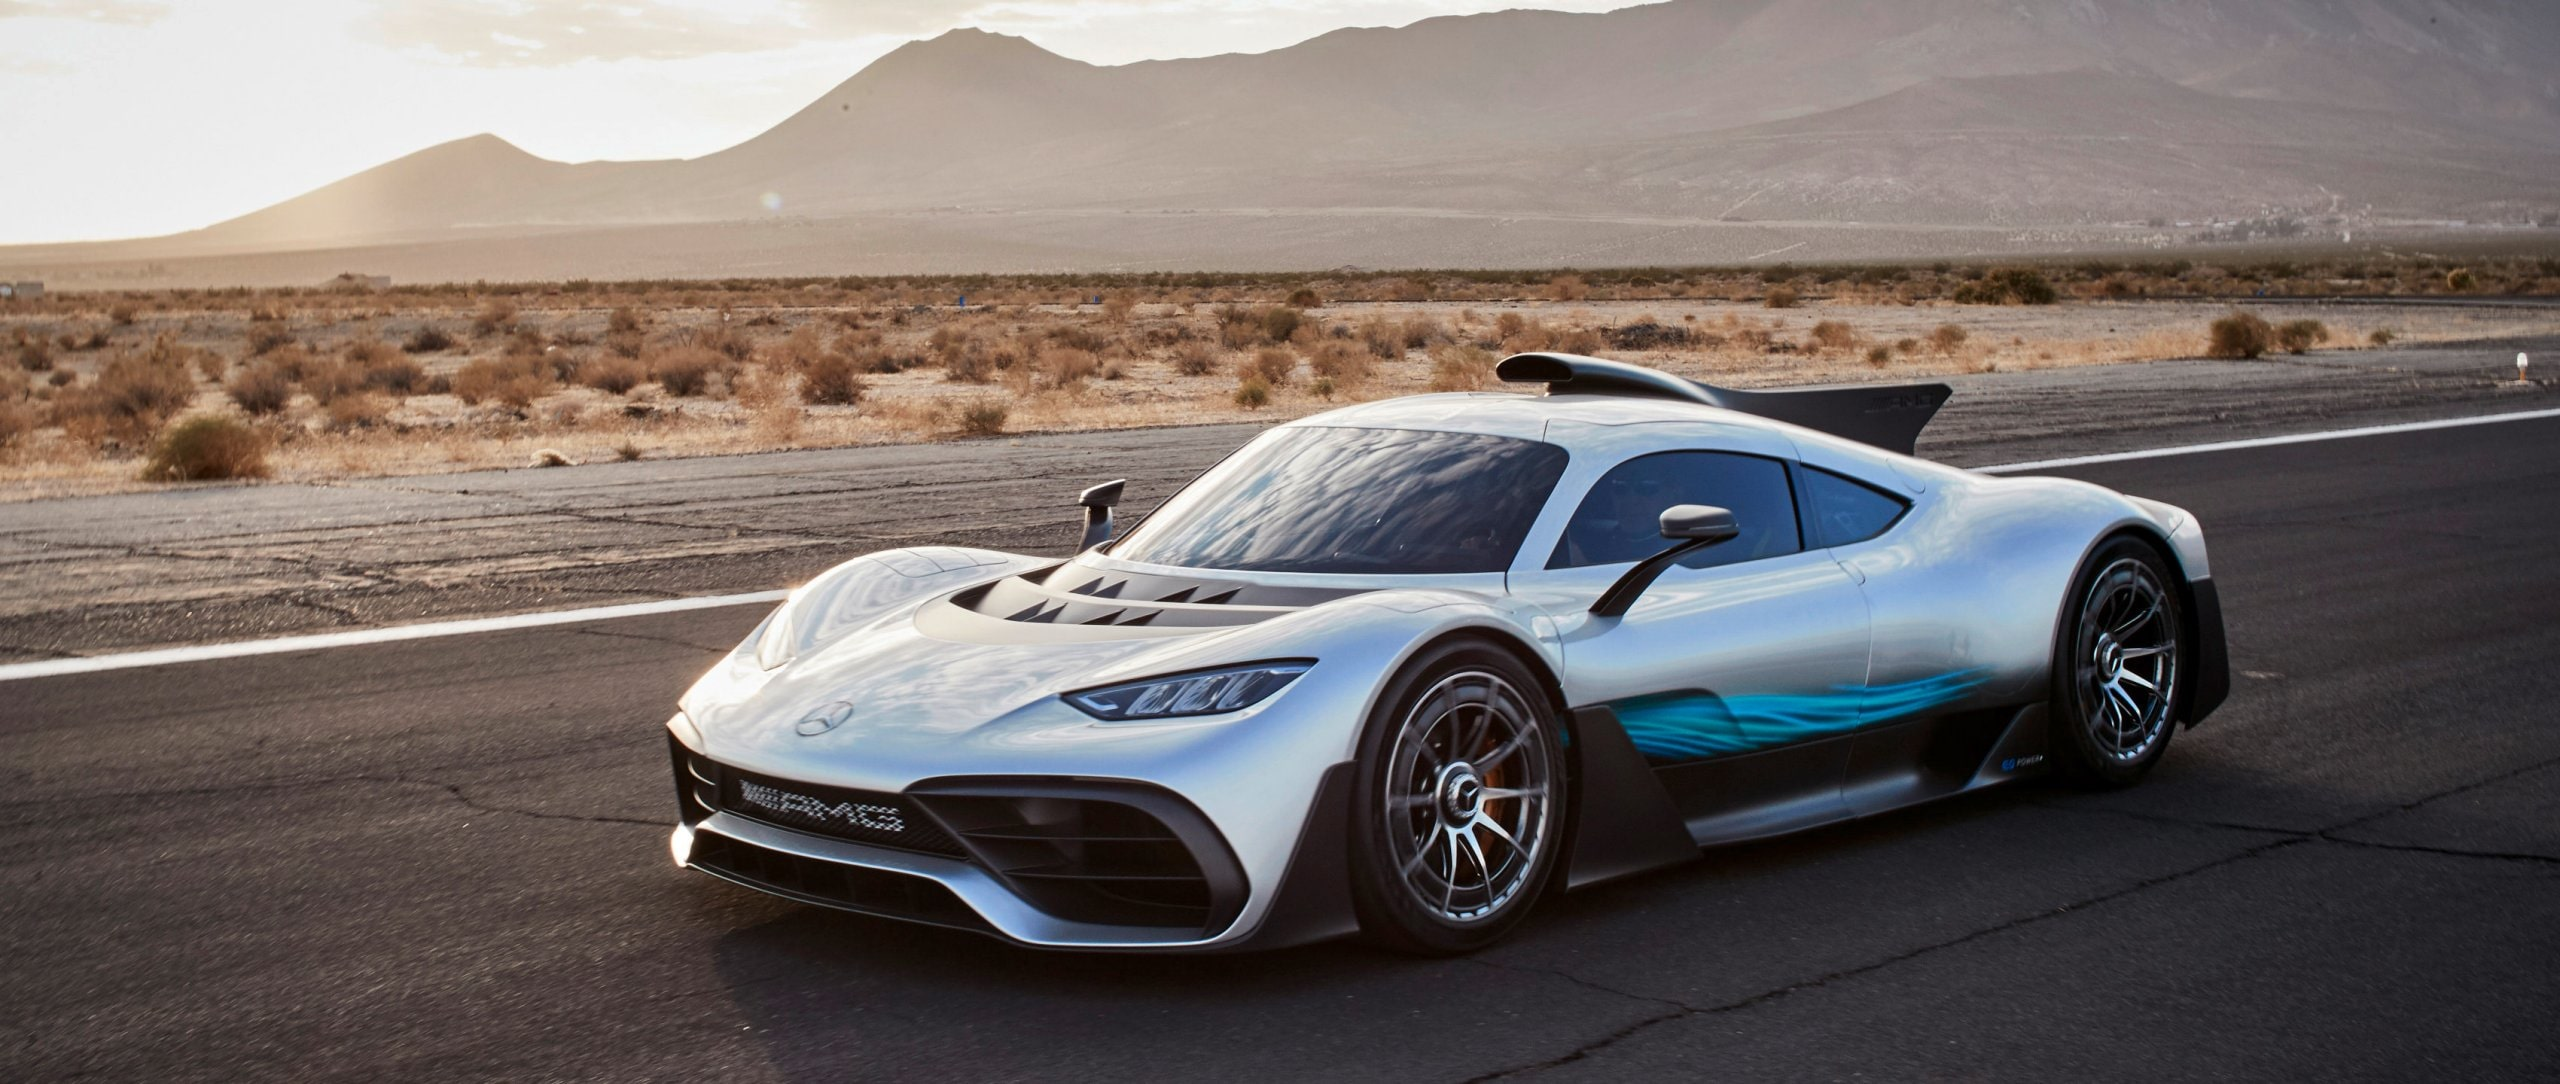 Mercedes-AMG Project ONE at Indian Wells Valley.